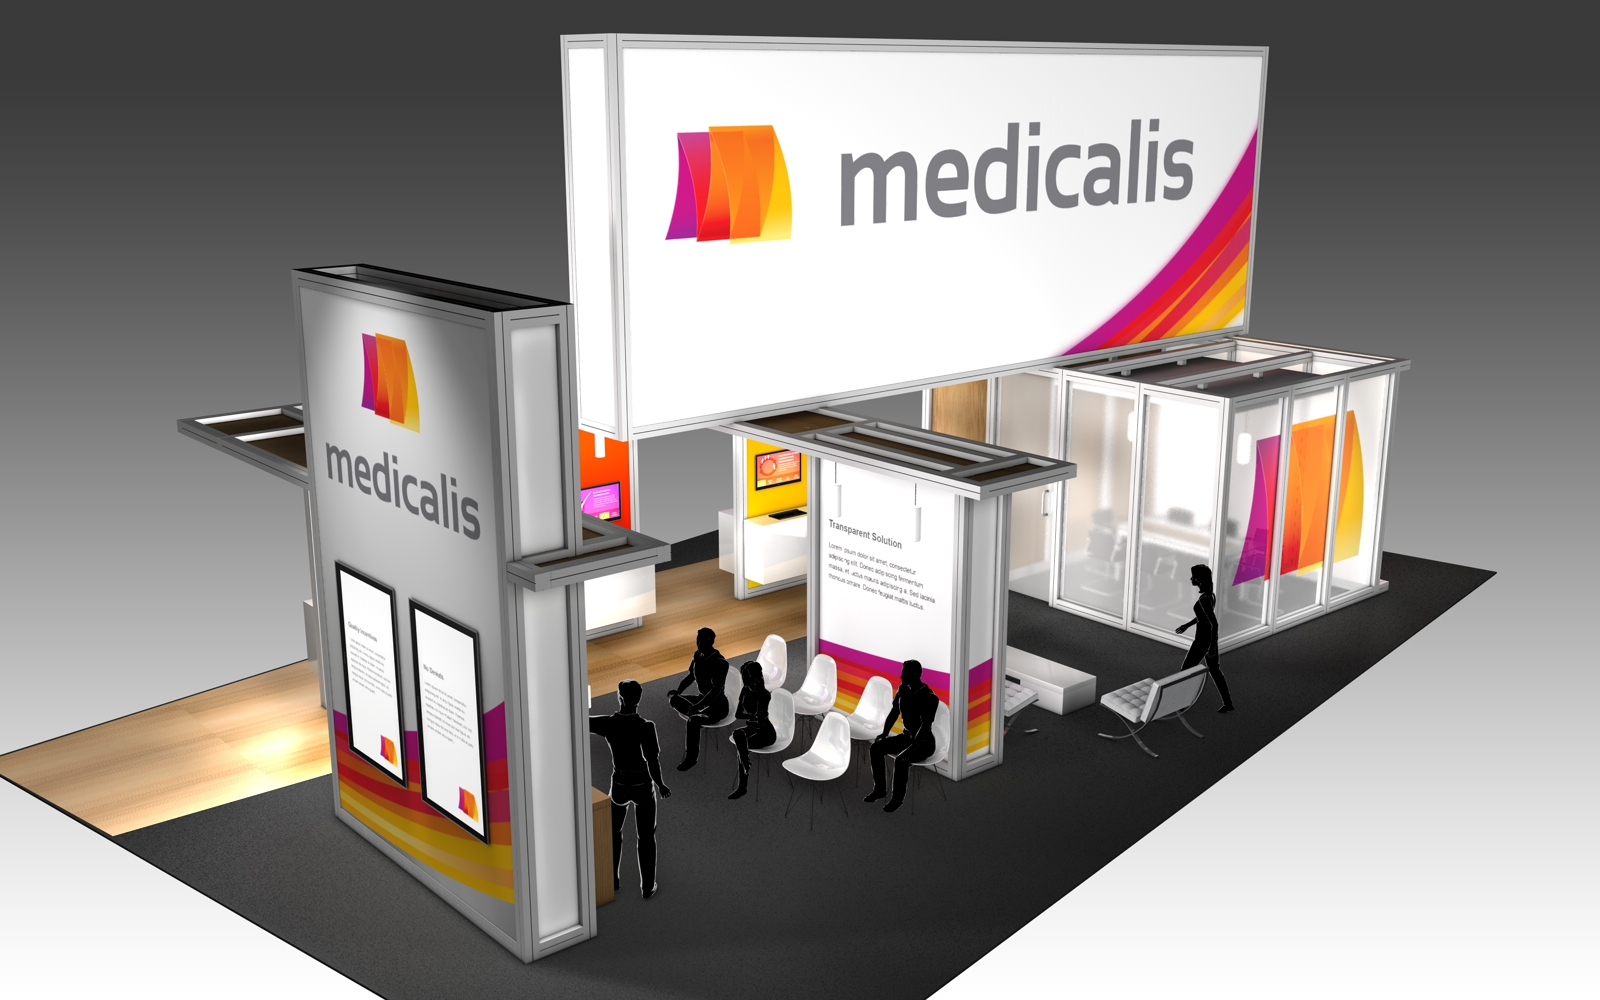 30' x 50' rental exhibit with vibrant graphics and large corporate branding for a U.S. radiology trade show